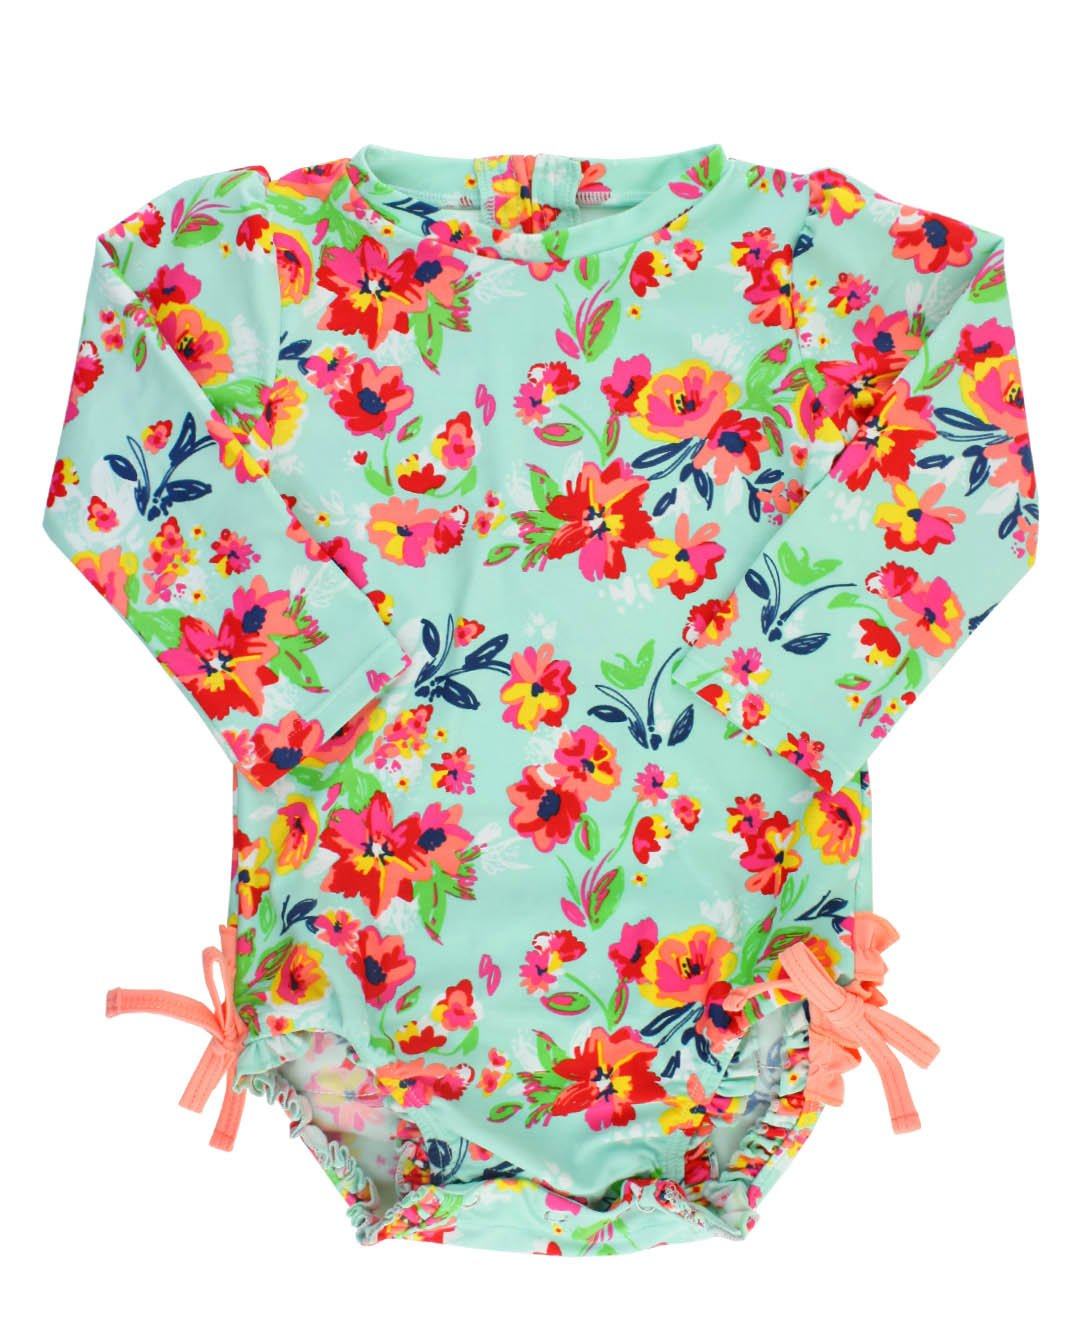 RuffleButts Little Girls Long Sleeve One Piece Swimsuit - Painted Flowers with UPF 50+ Sun Protection - 2T